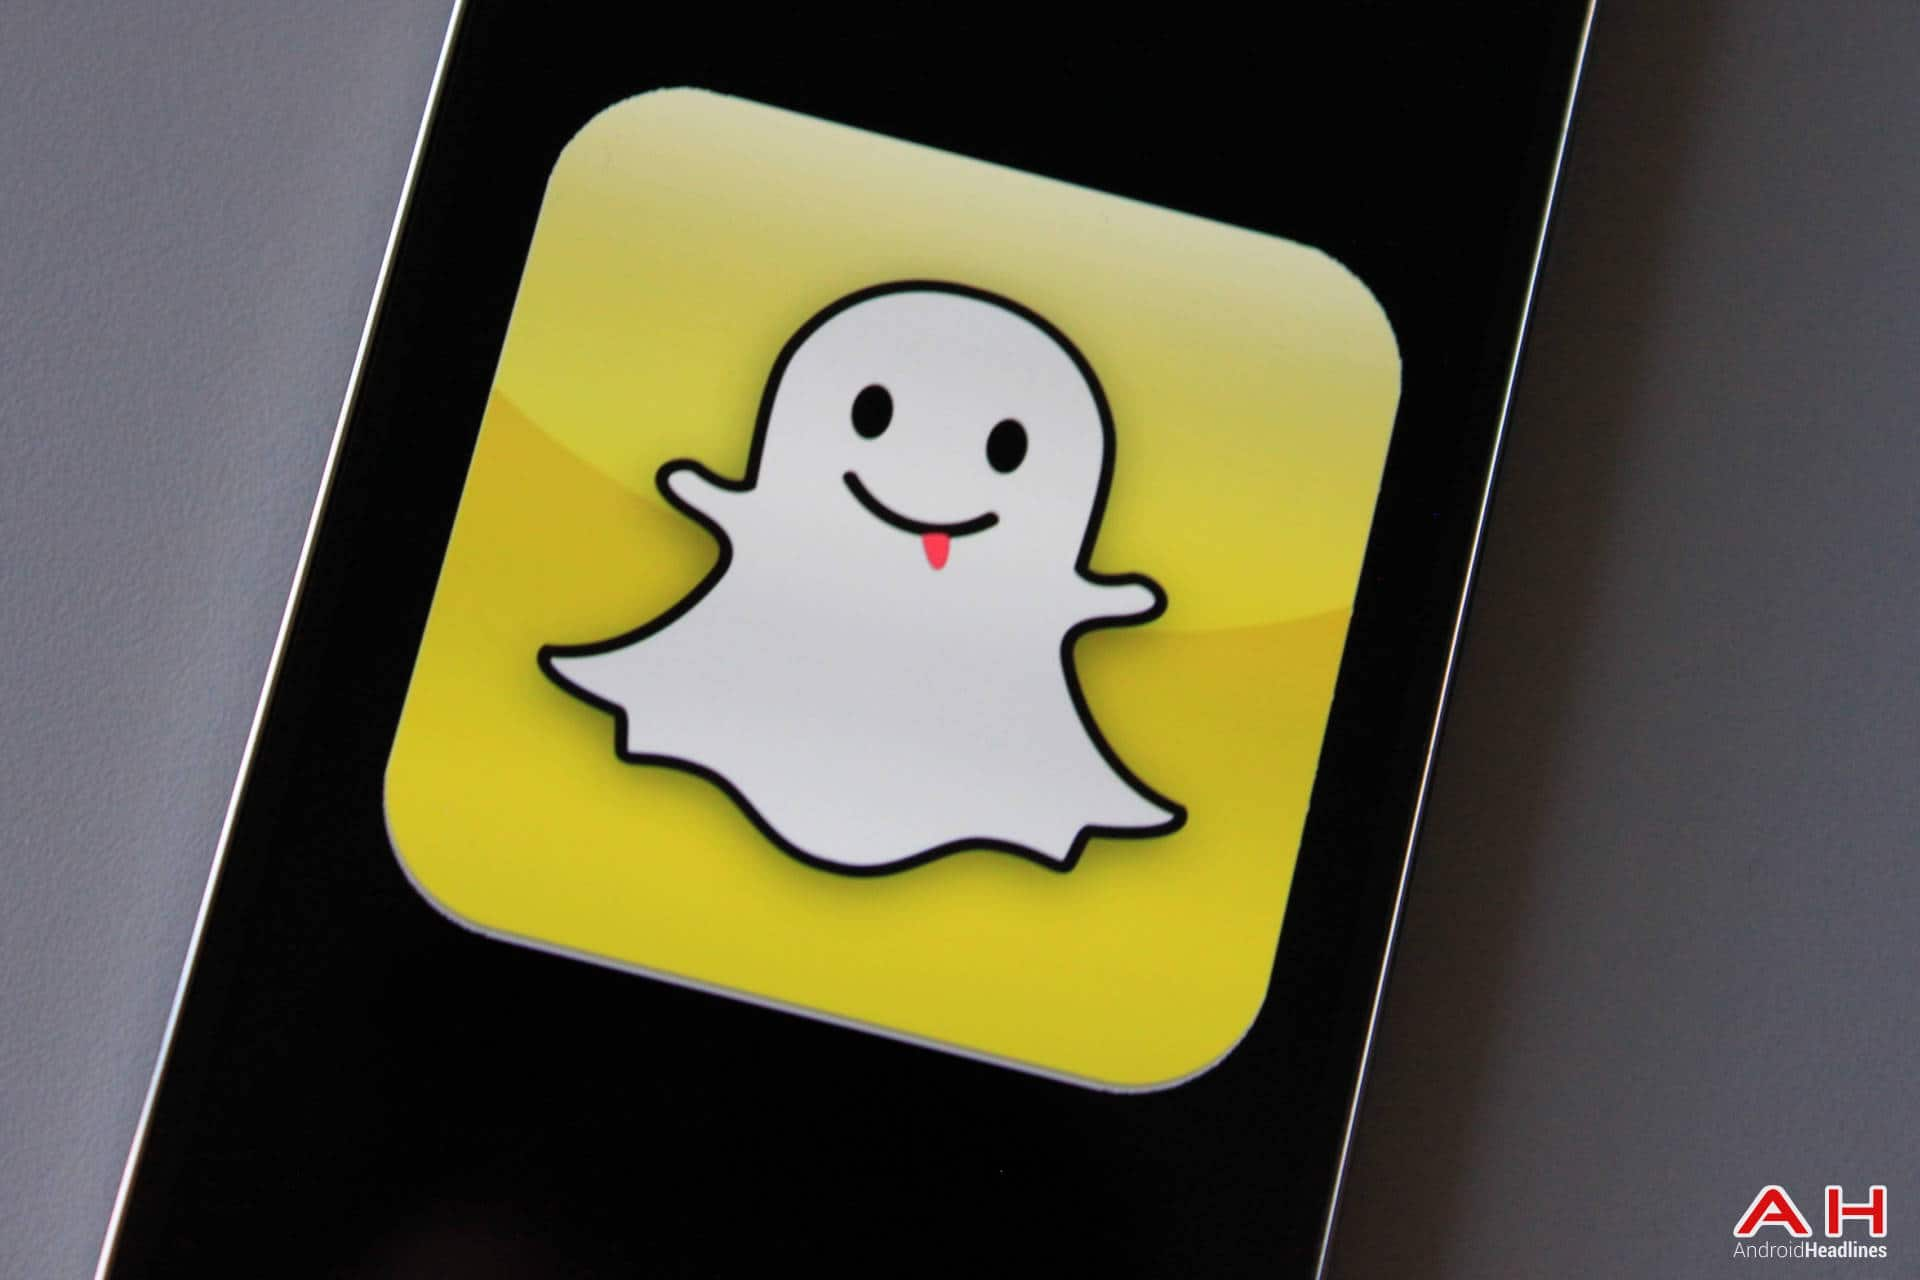 Snapchat On The Rise, Already more popular than Twitter and Google